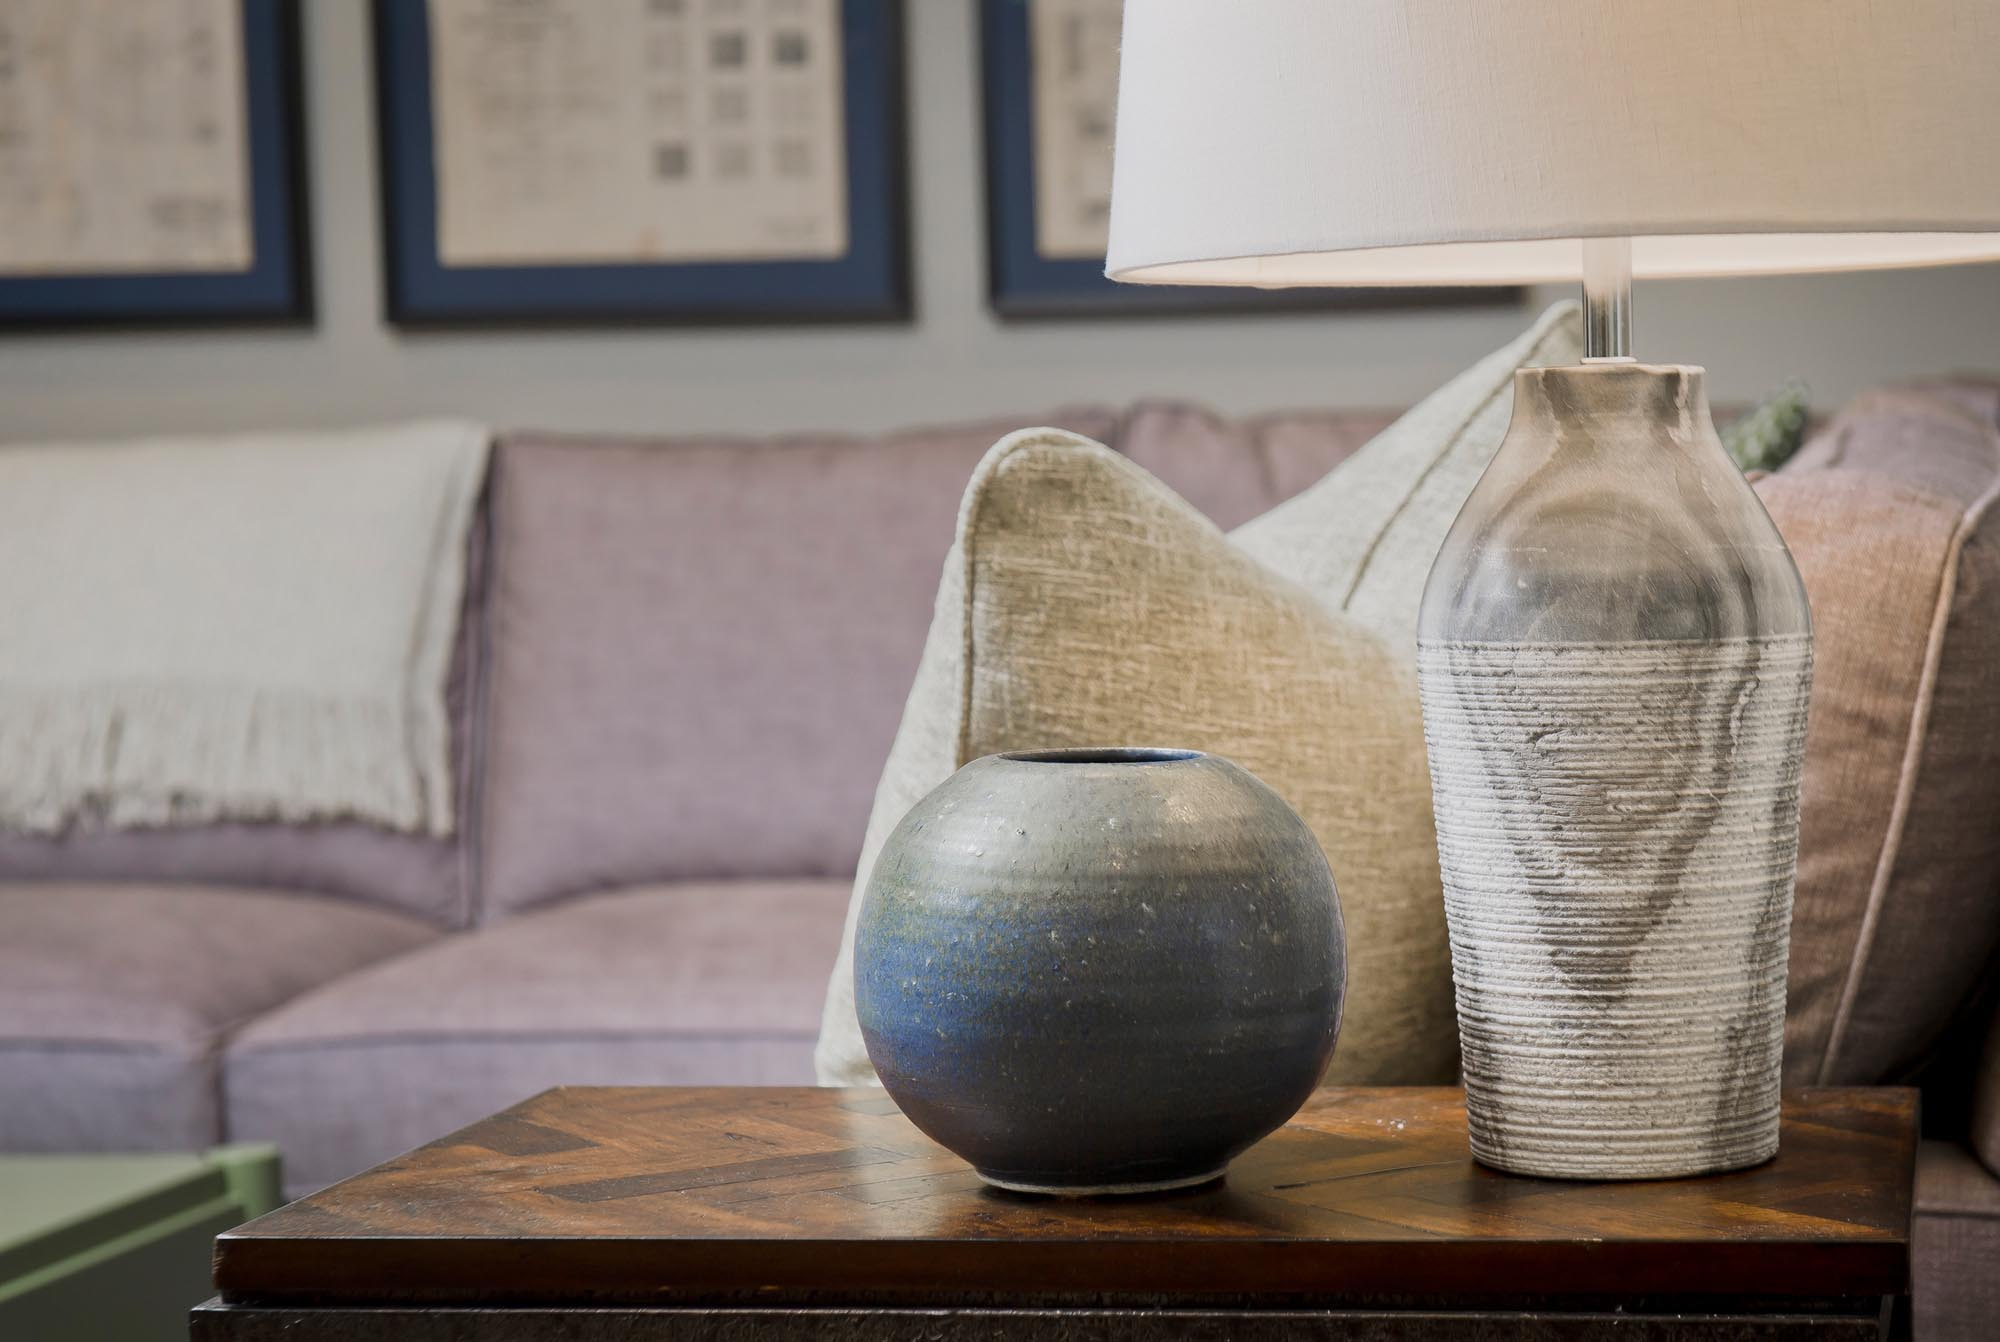 Wooden side table with lamp and clay bowl